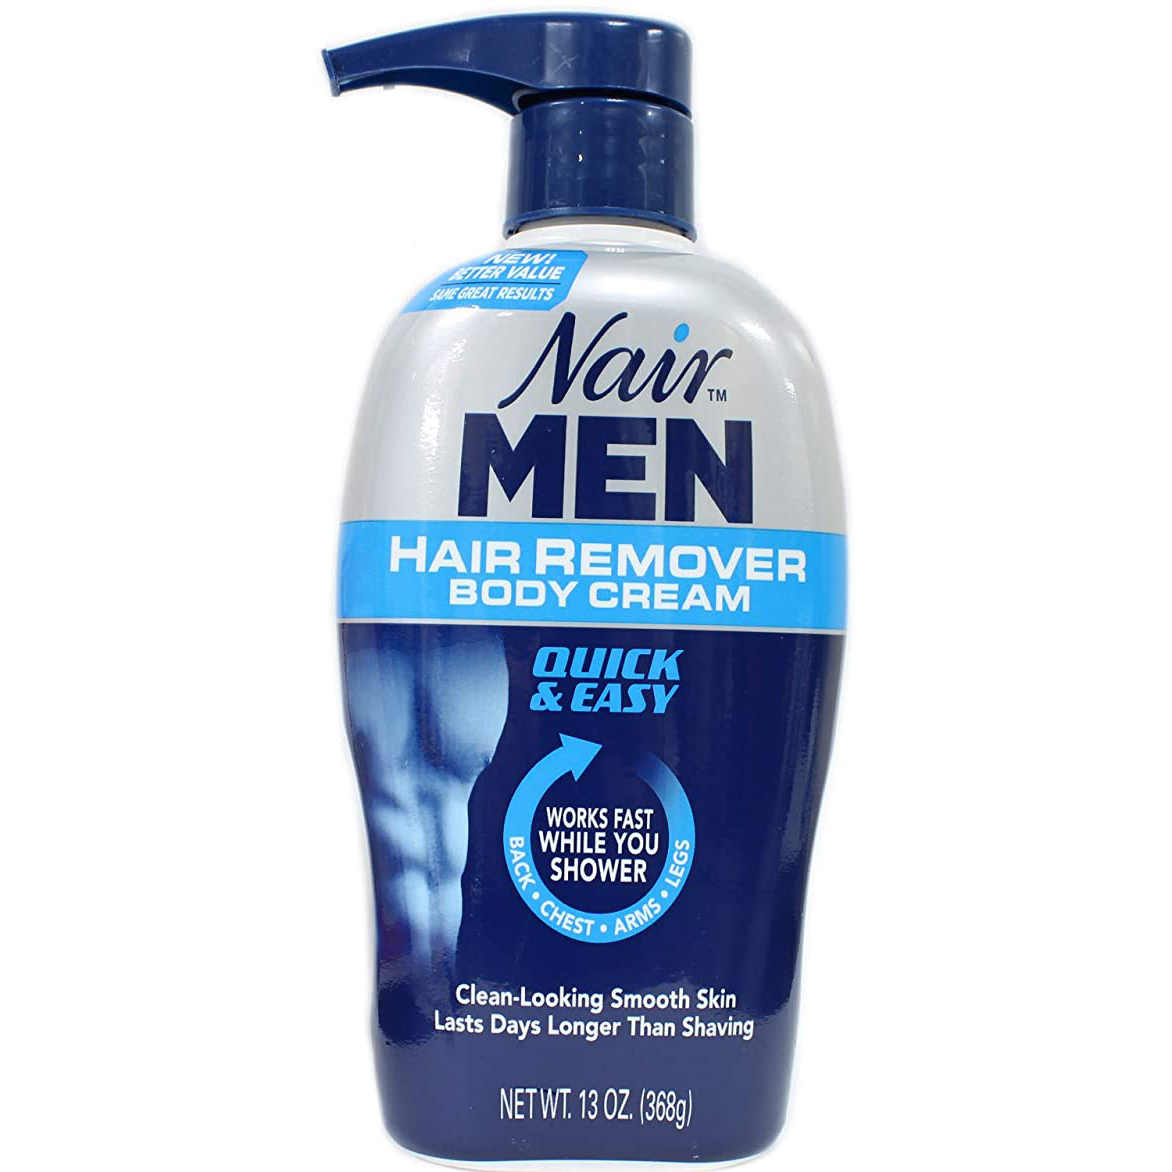 Nair Body Remover Cream for Men, best hair removal creams